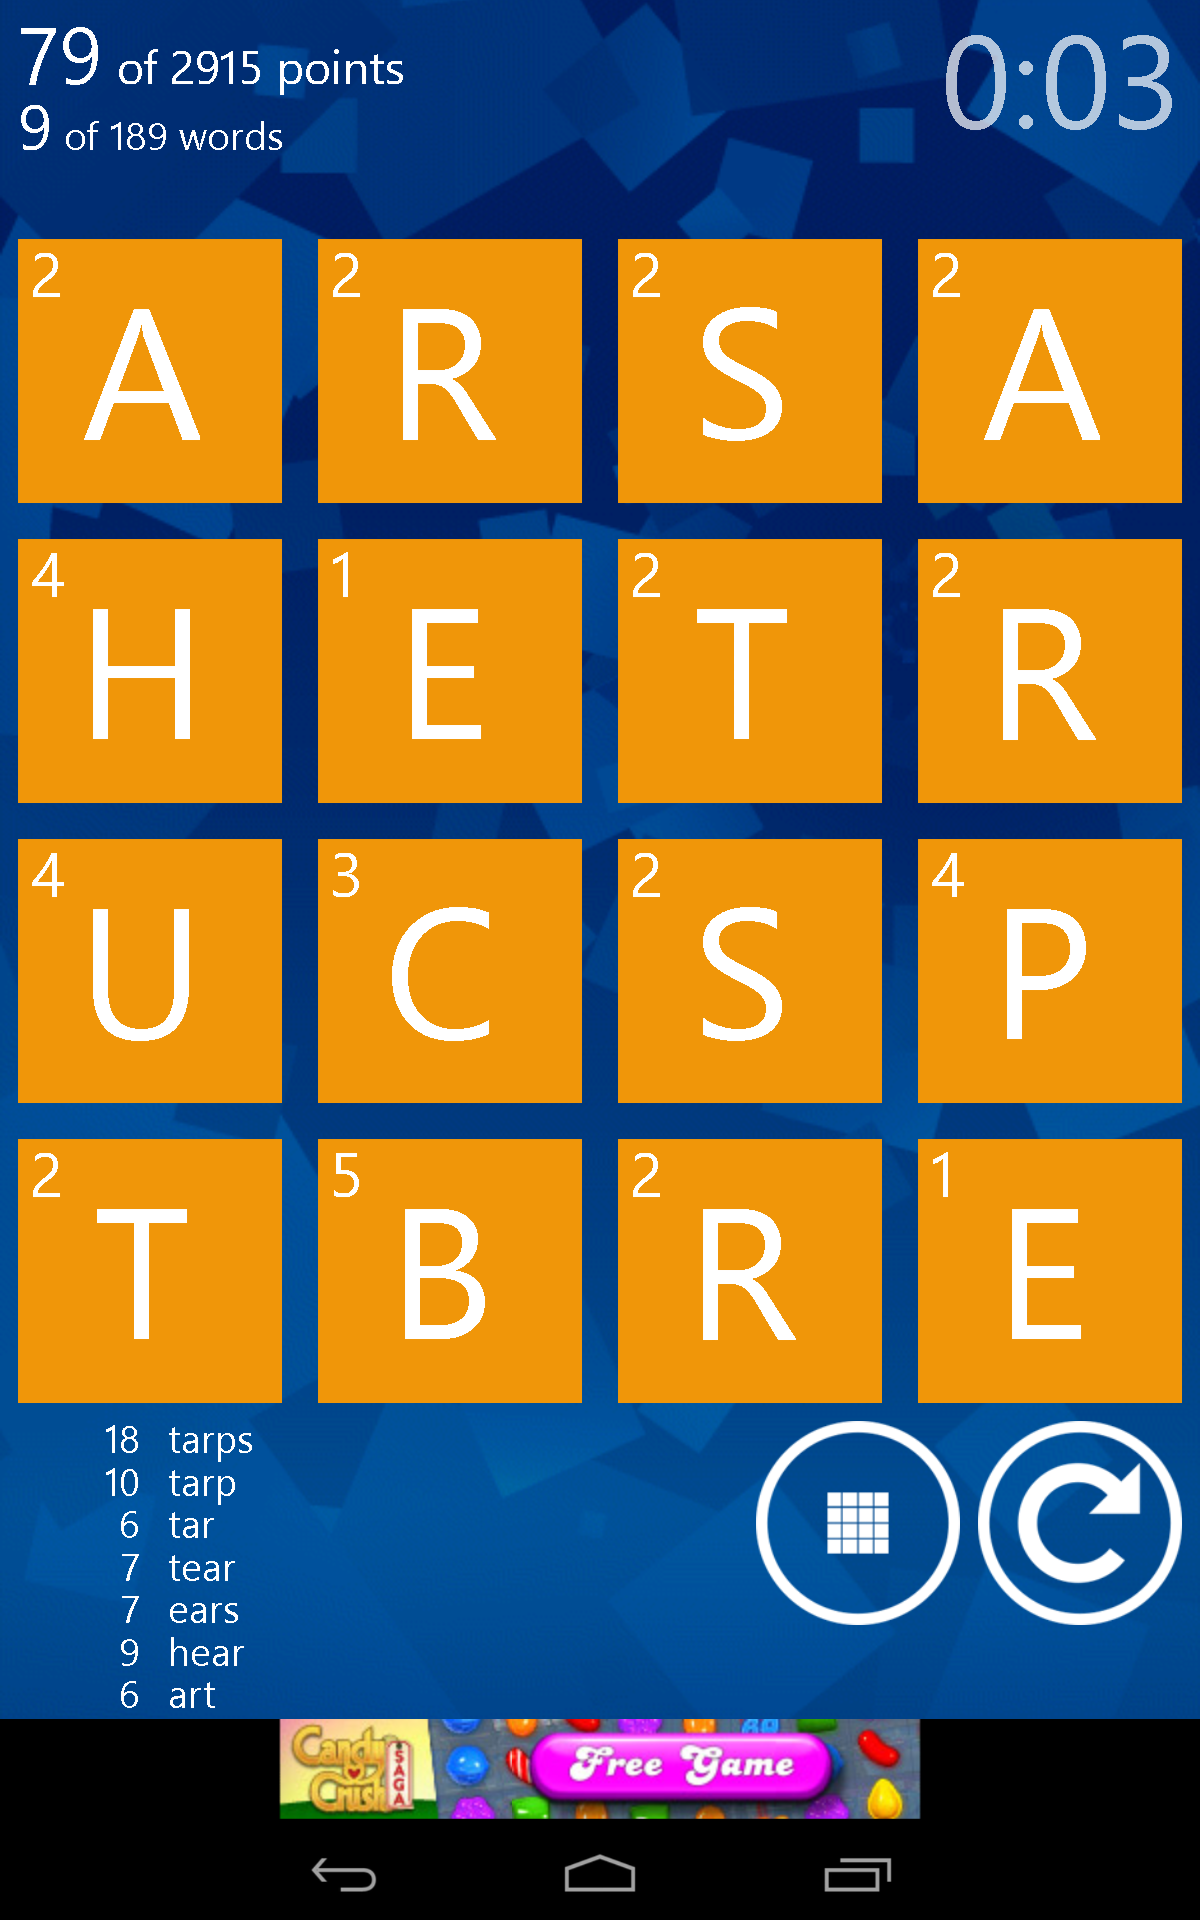 New Game] Microsoft Releases Wordament Online Word Puzzle Game On ...